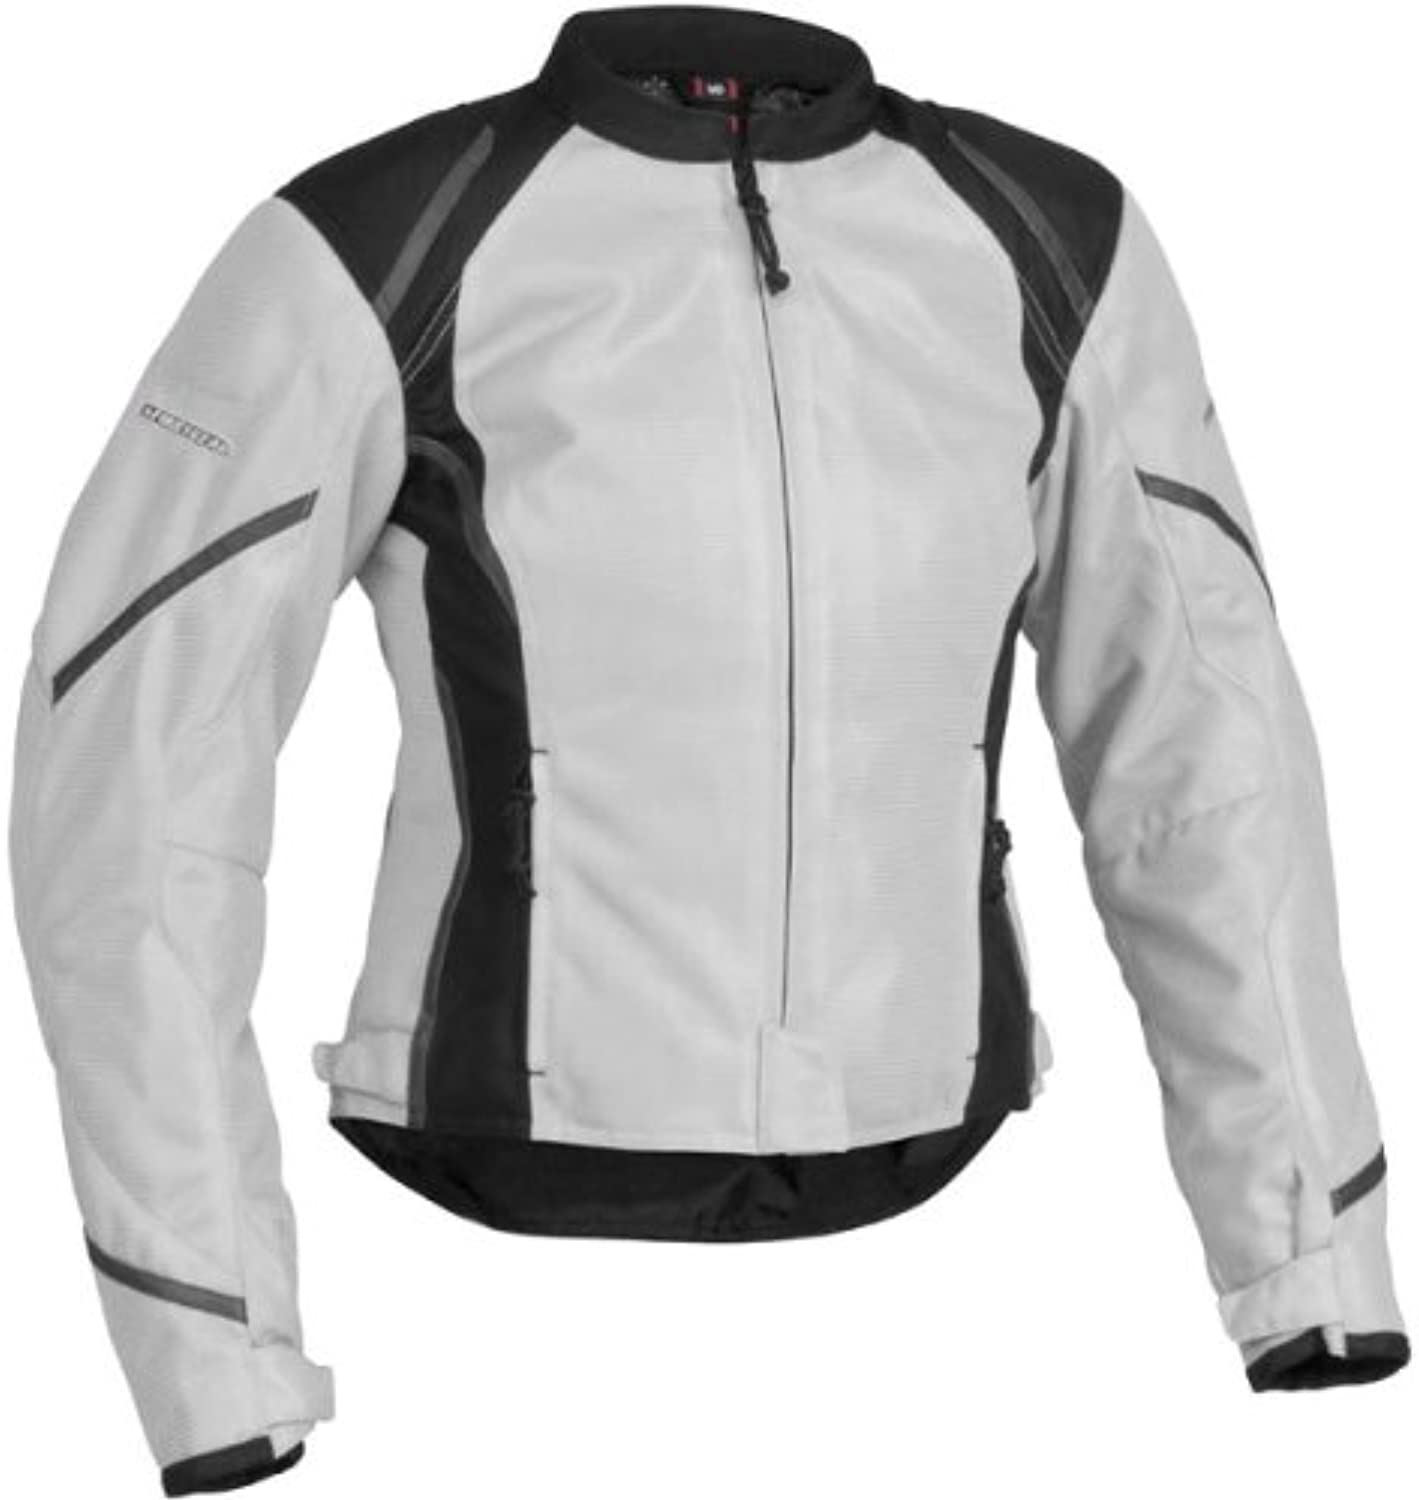 Firstgear Women's Mesh Textile Jacket  Silver Black Large  FTJ.1307.02.W003